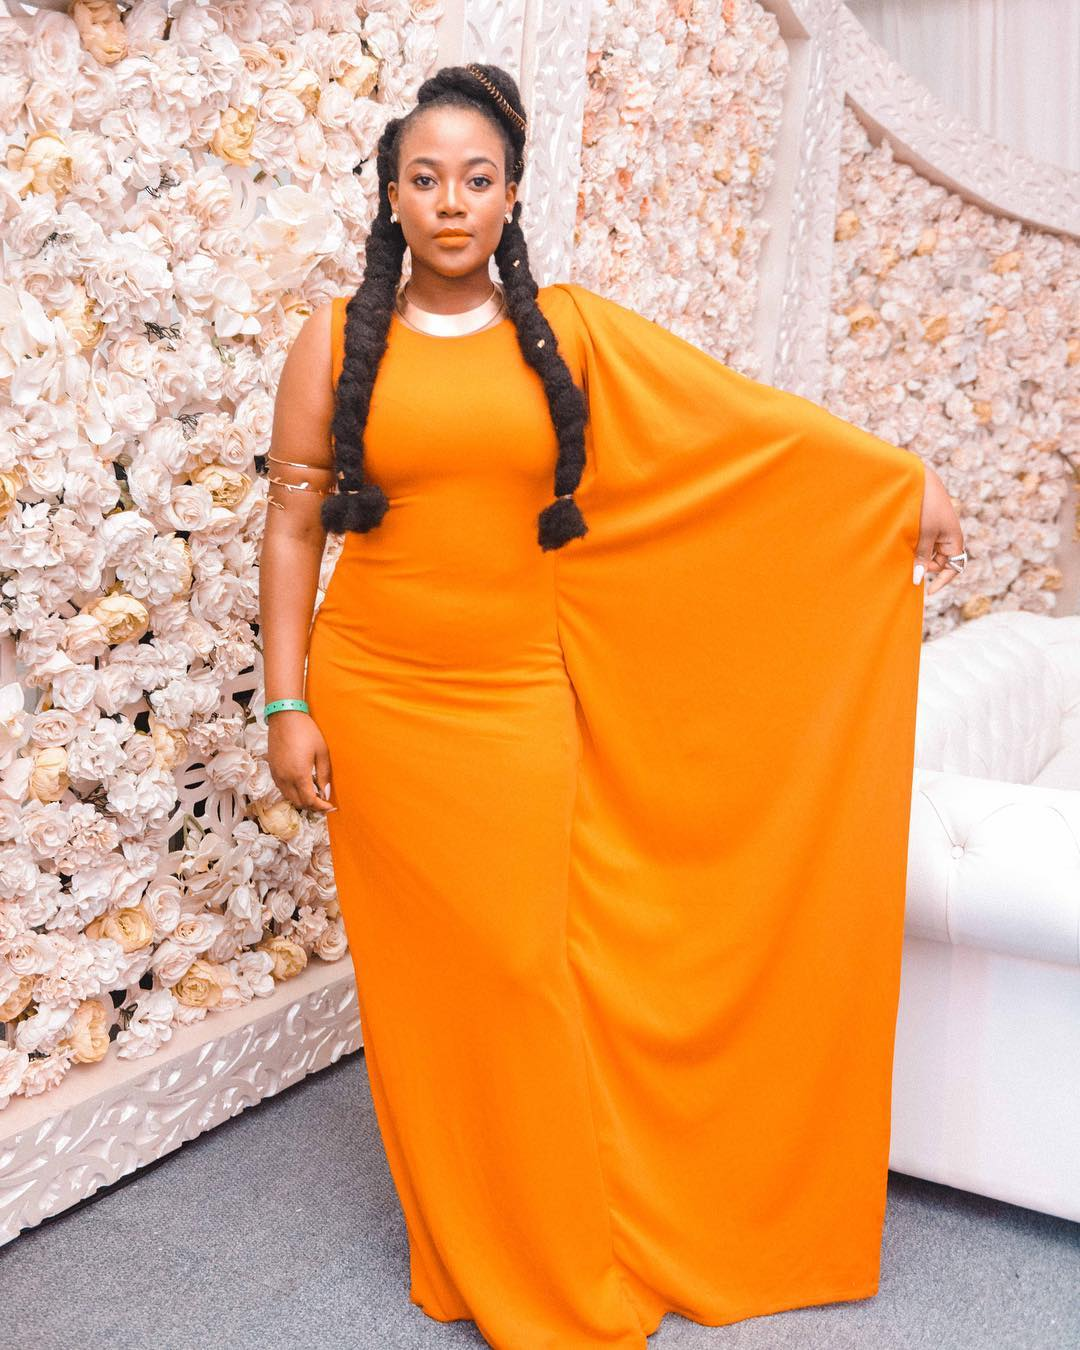 House Vocalist Nichume Passes Away